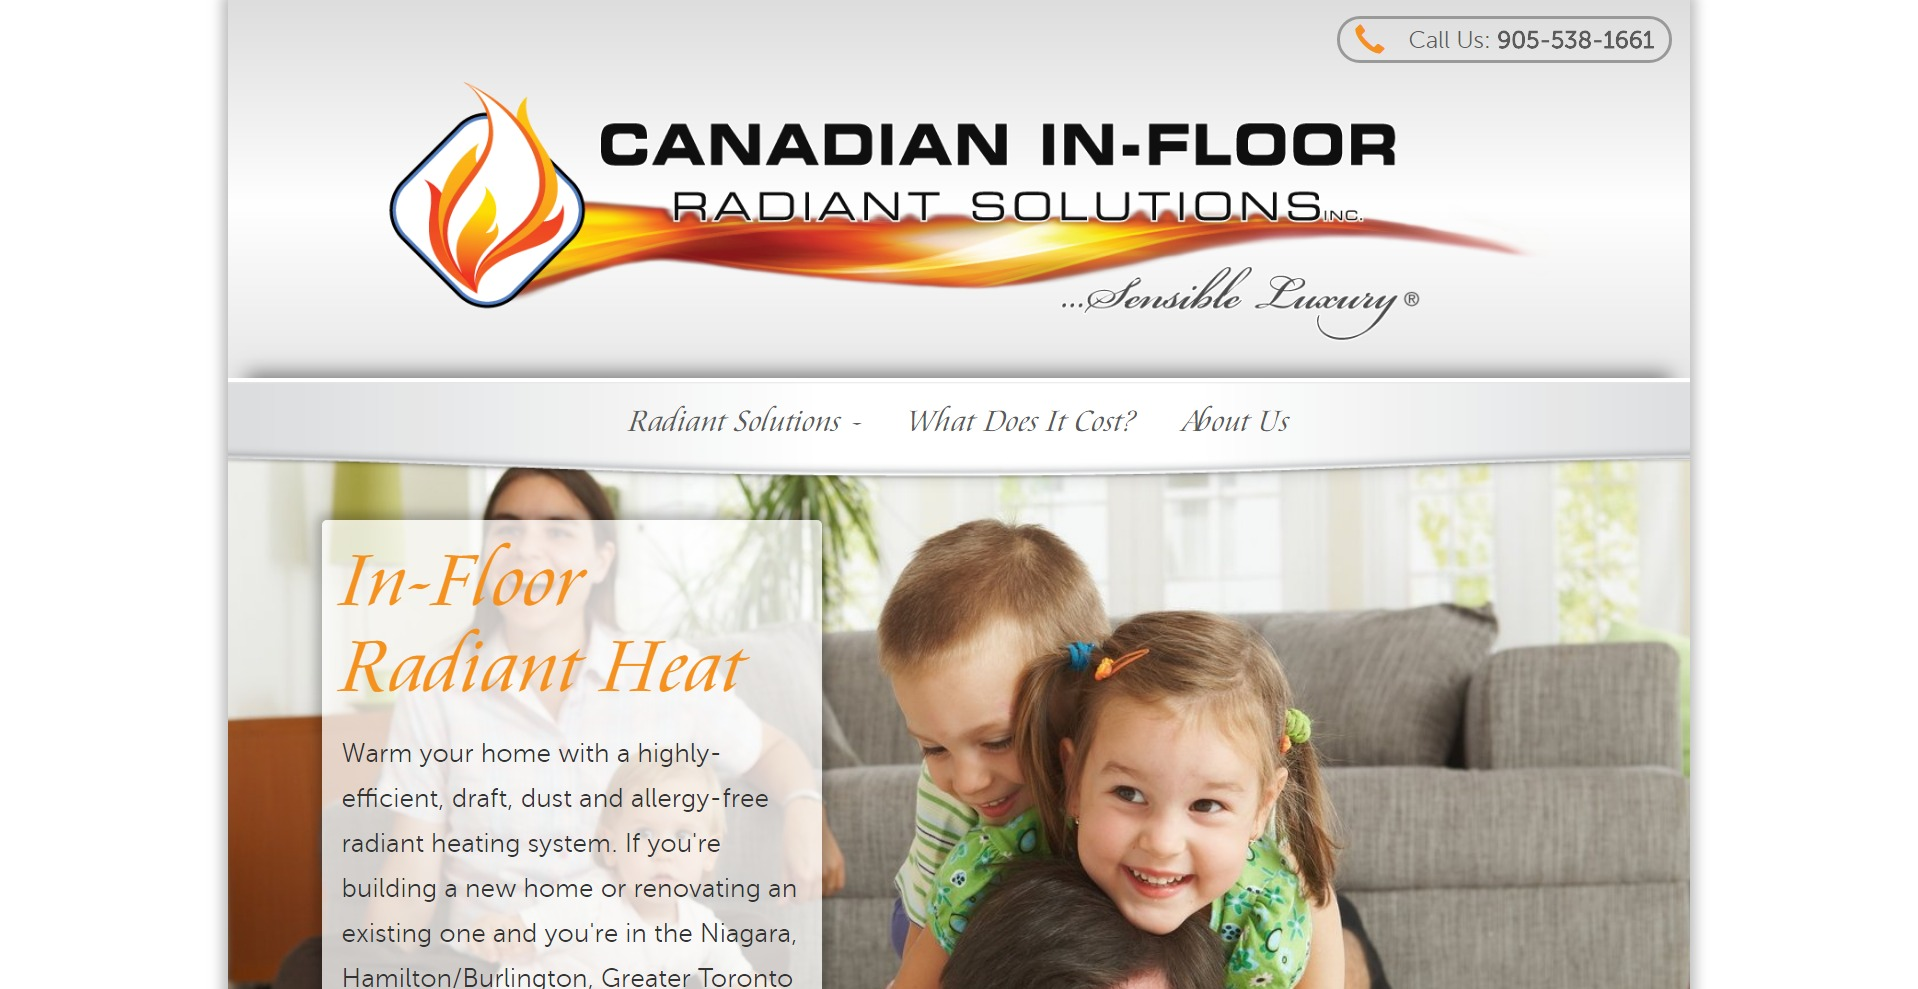 Screenshot of Canadian In-Floor Radiant Heating website